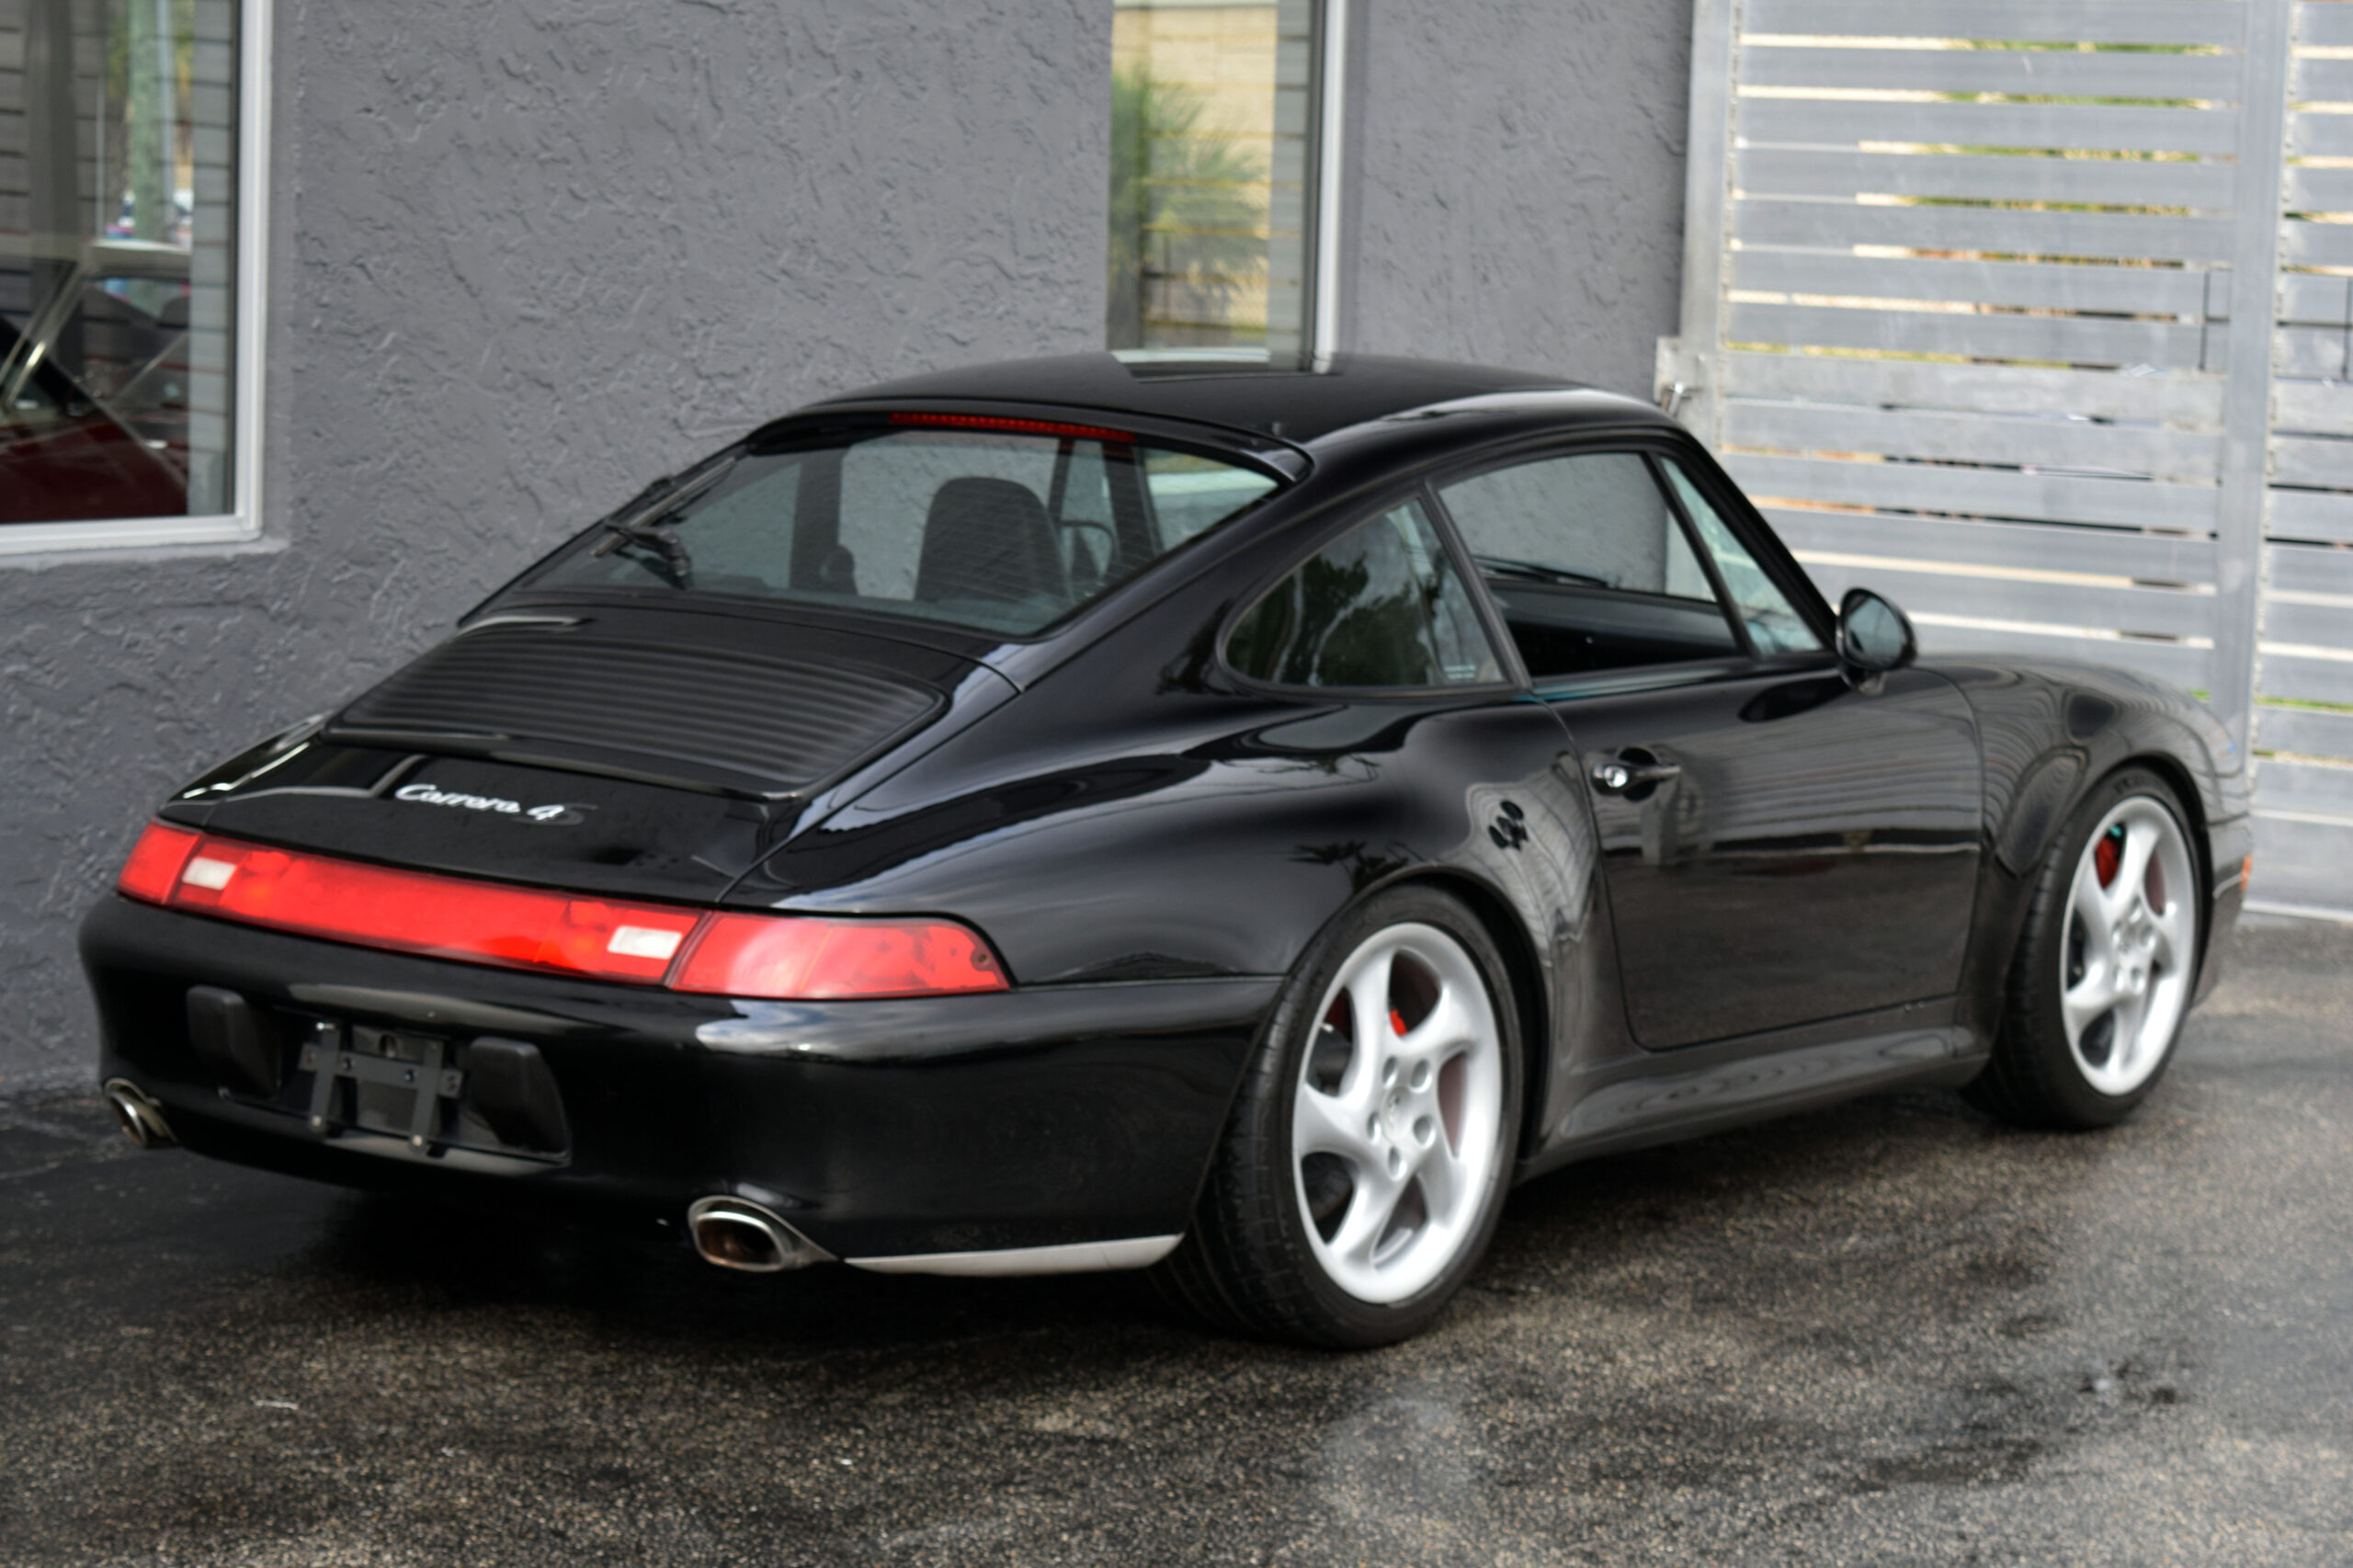 1997 Porsche 911 993 C4S Same owner for 22 years, H&R Coilovers, Litronic headlamps, clean very original